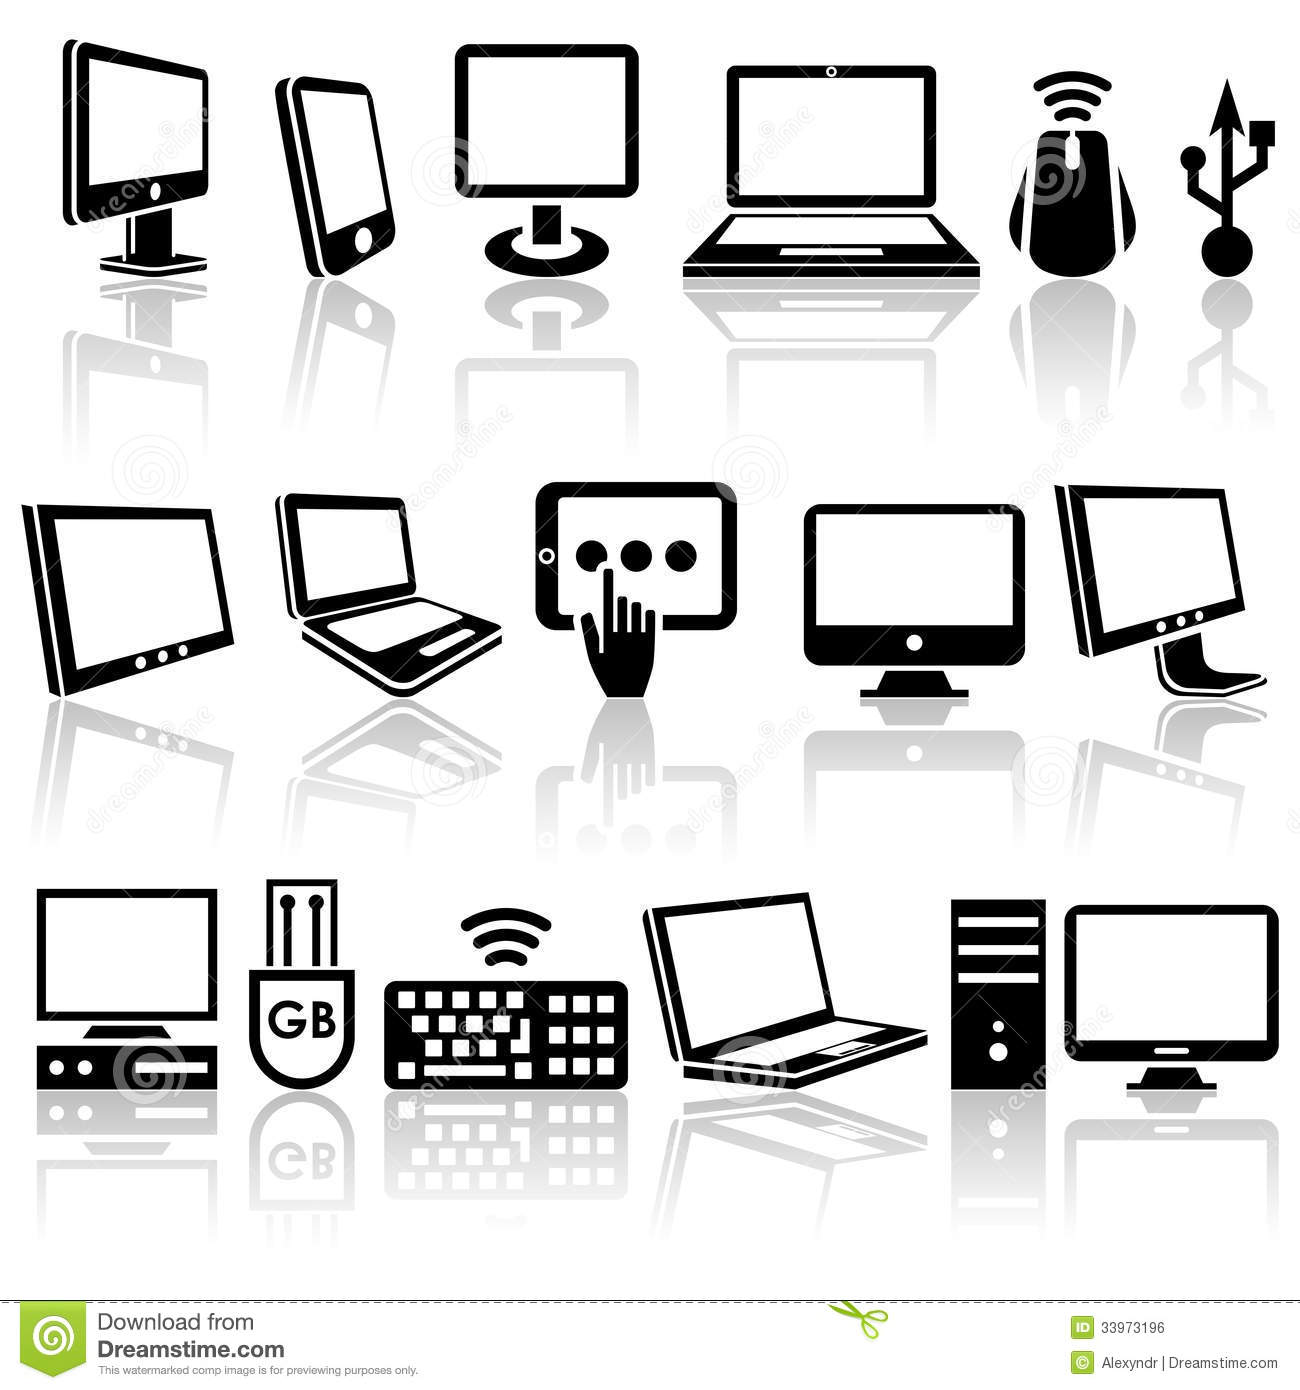 11 Computer Icon Vector Free Images - Free Computer Vector ...